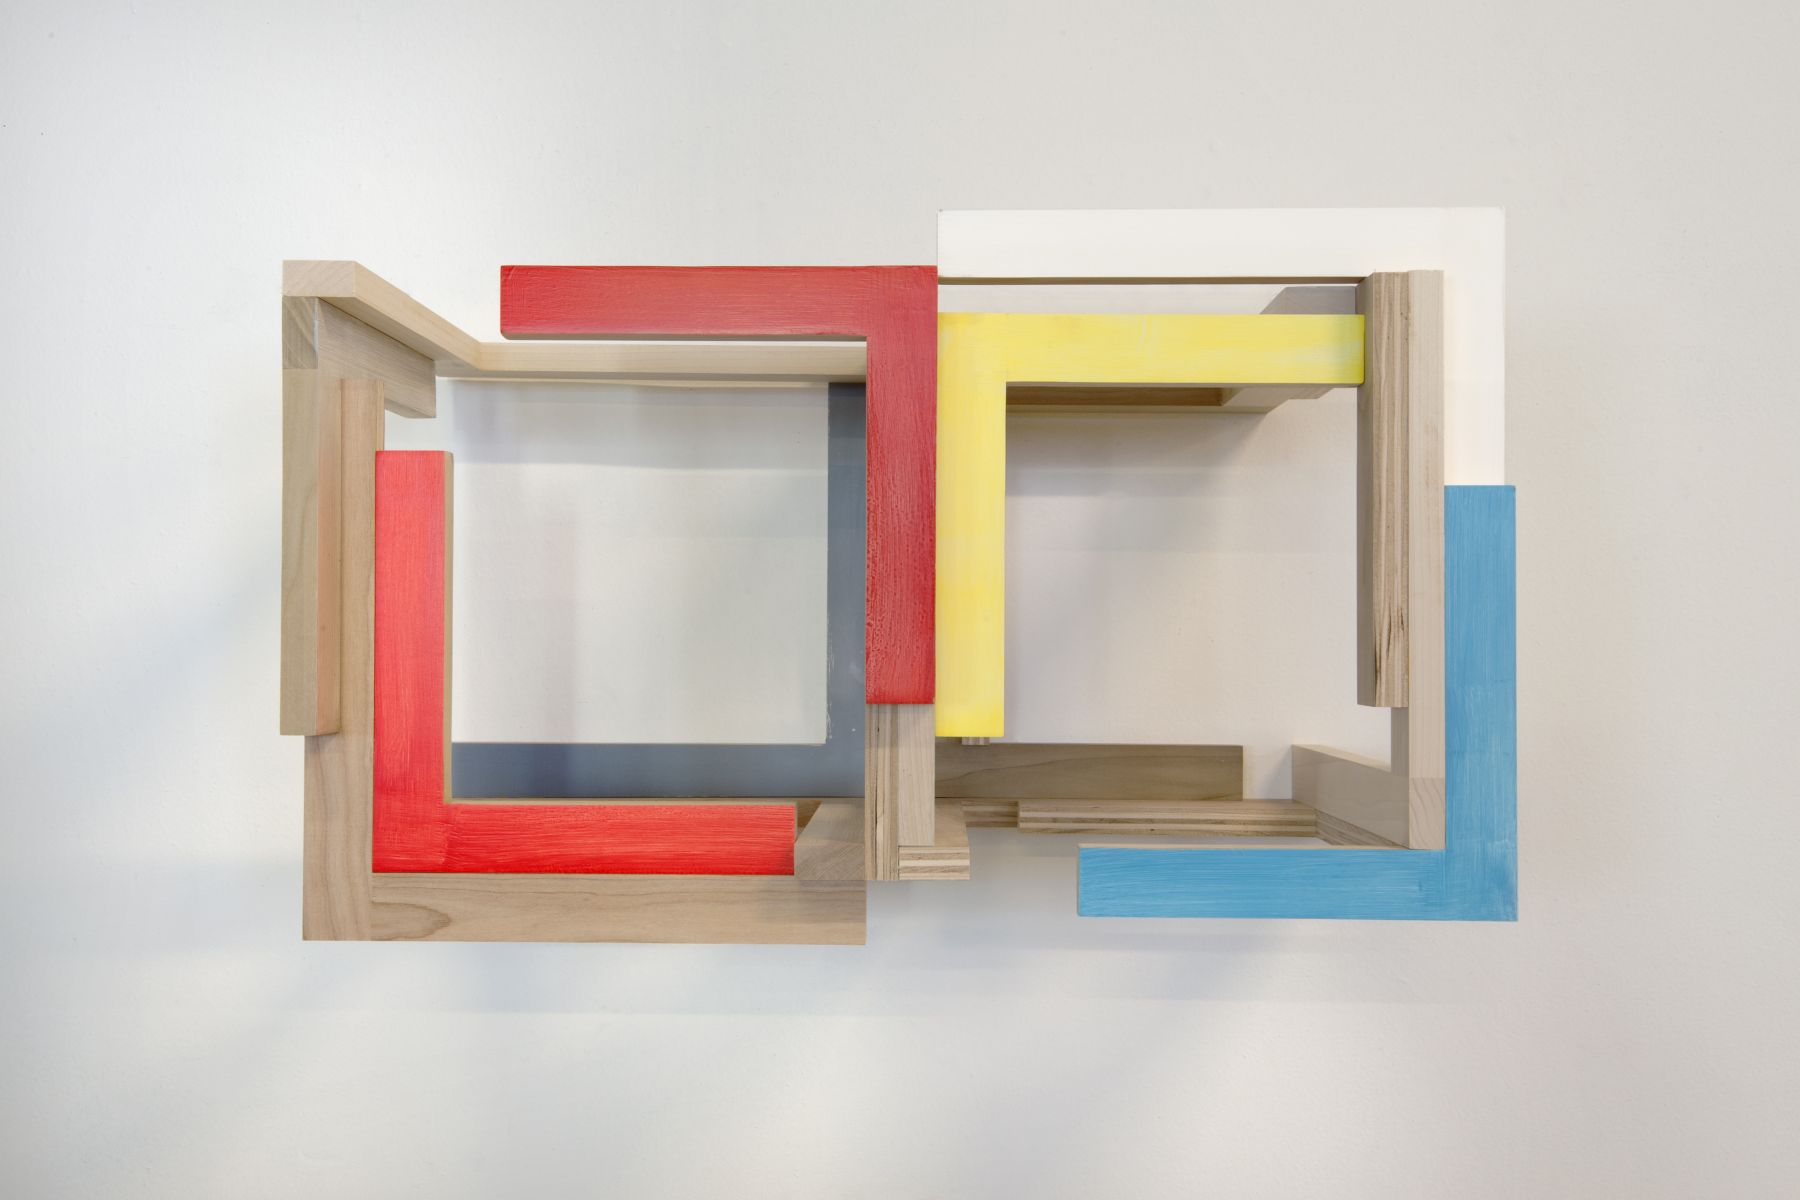 "James Woodfill ""Training Model: Wall Model #5 Deucea"", Birch plywood, poplar, maple with acrylic and gesso, wall mounted, 15"" x 27"" x 15"", 2019, an open double chambered wooden wall sculpture with natural, red, yellow, white, medium grey and blue"